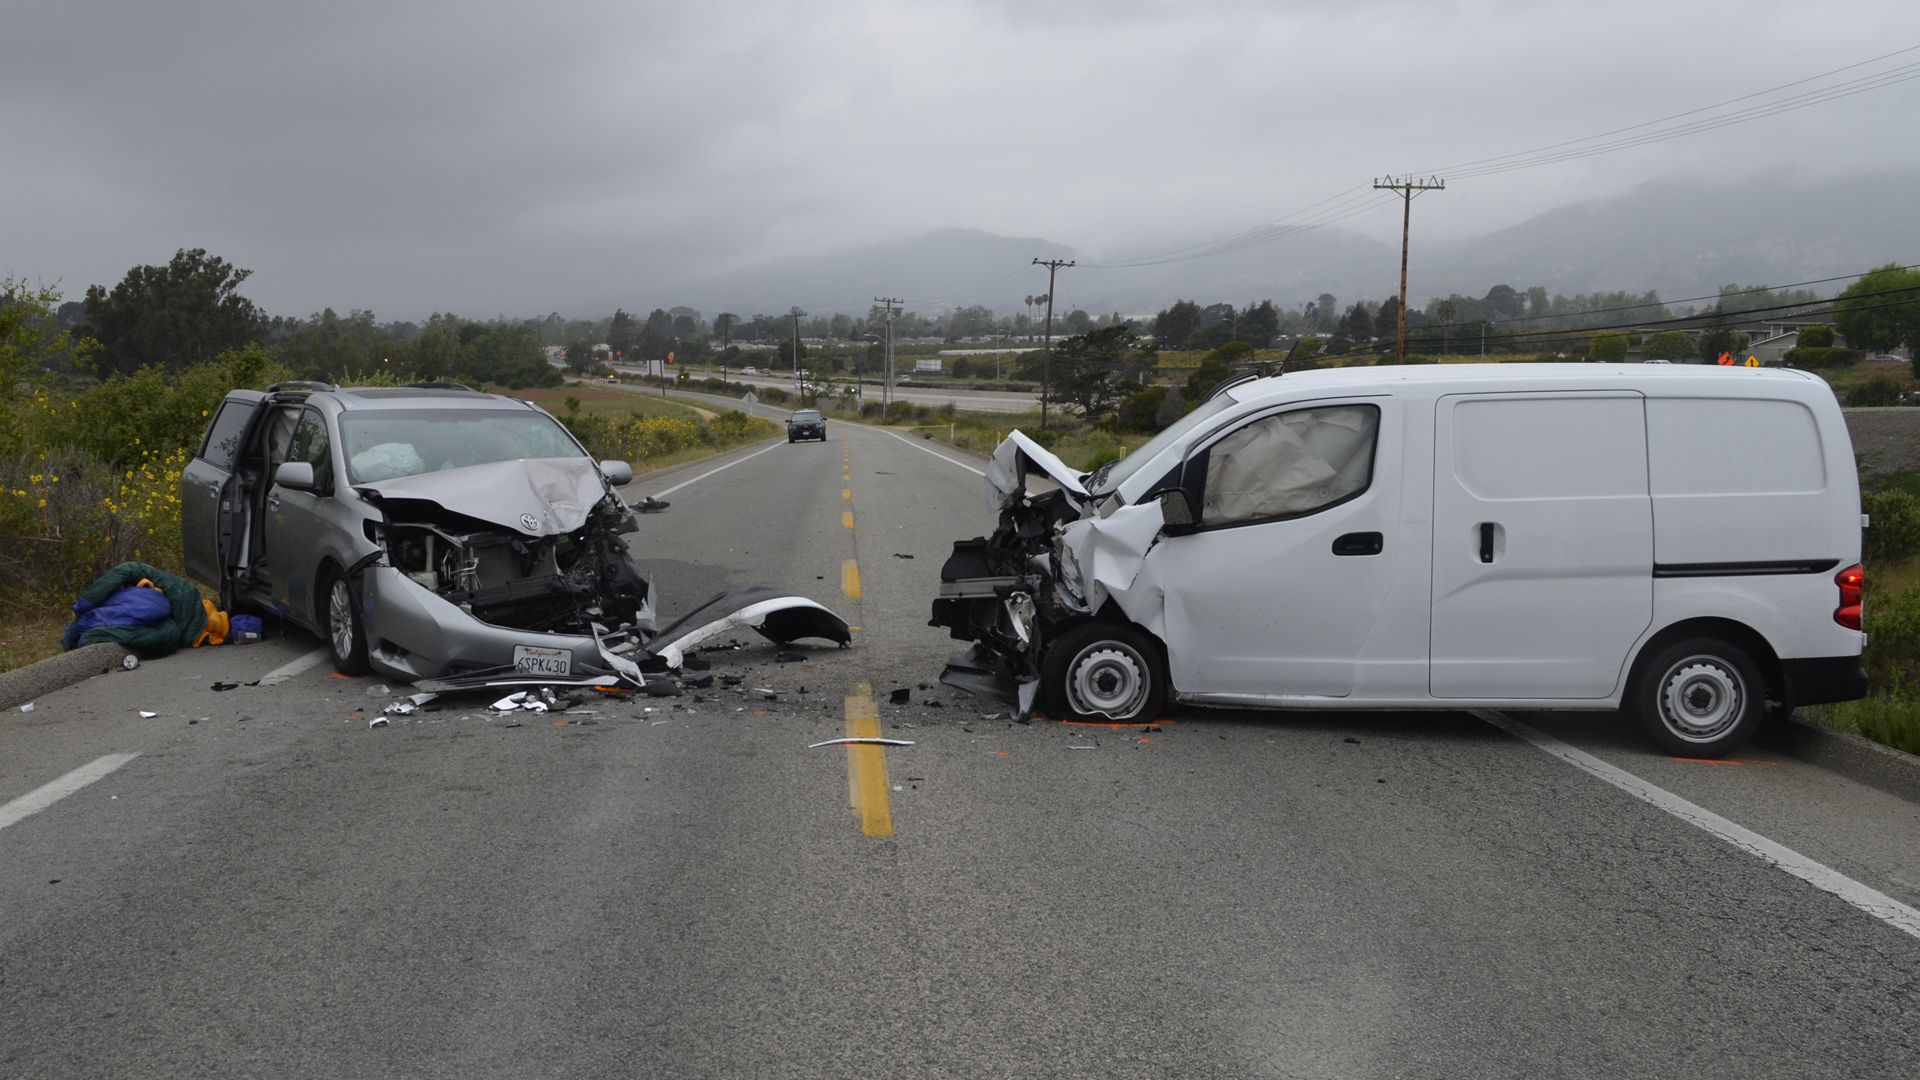 A woman died and five other people were hurt in a head-on crash in Carpinteria on April 20, 2019. (Credit: Santa Barbara County Sheriff's Office)